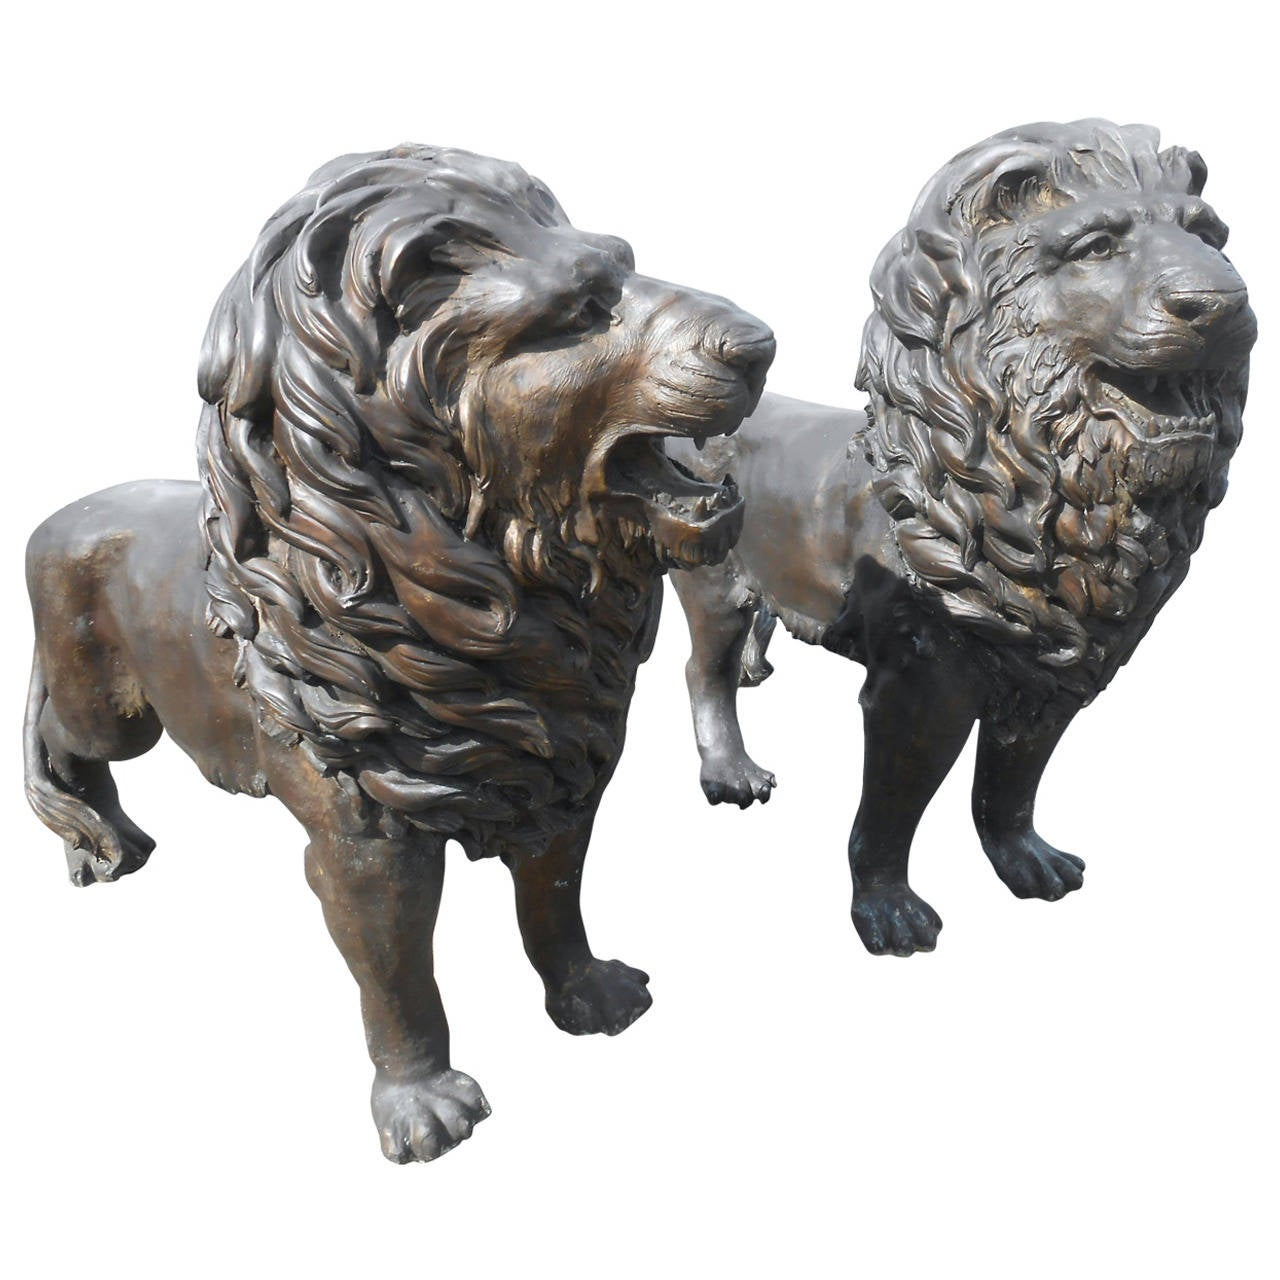 Genial Pair Of Majestic Bronze Lion Garden Statues For Sale At 1stdibs